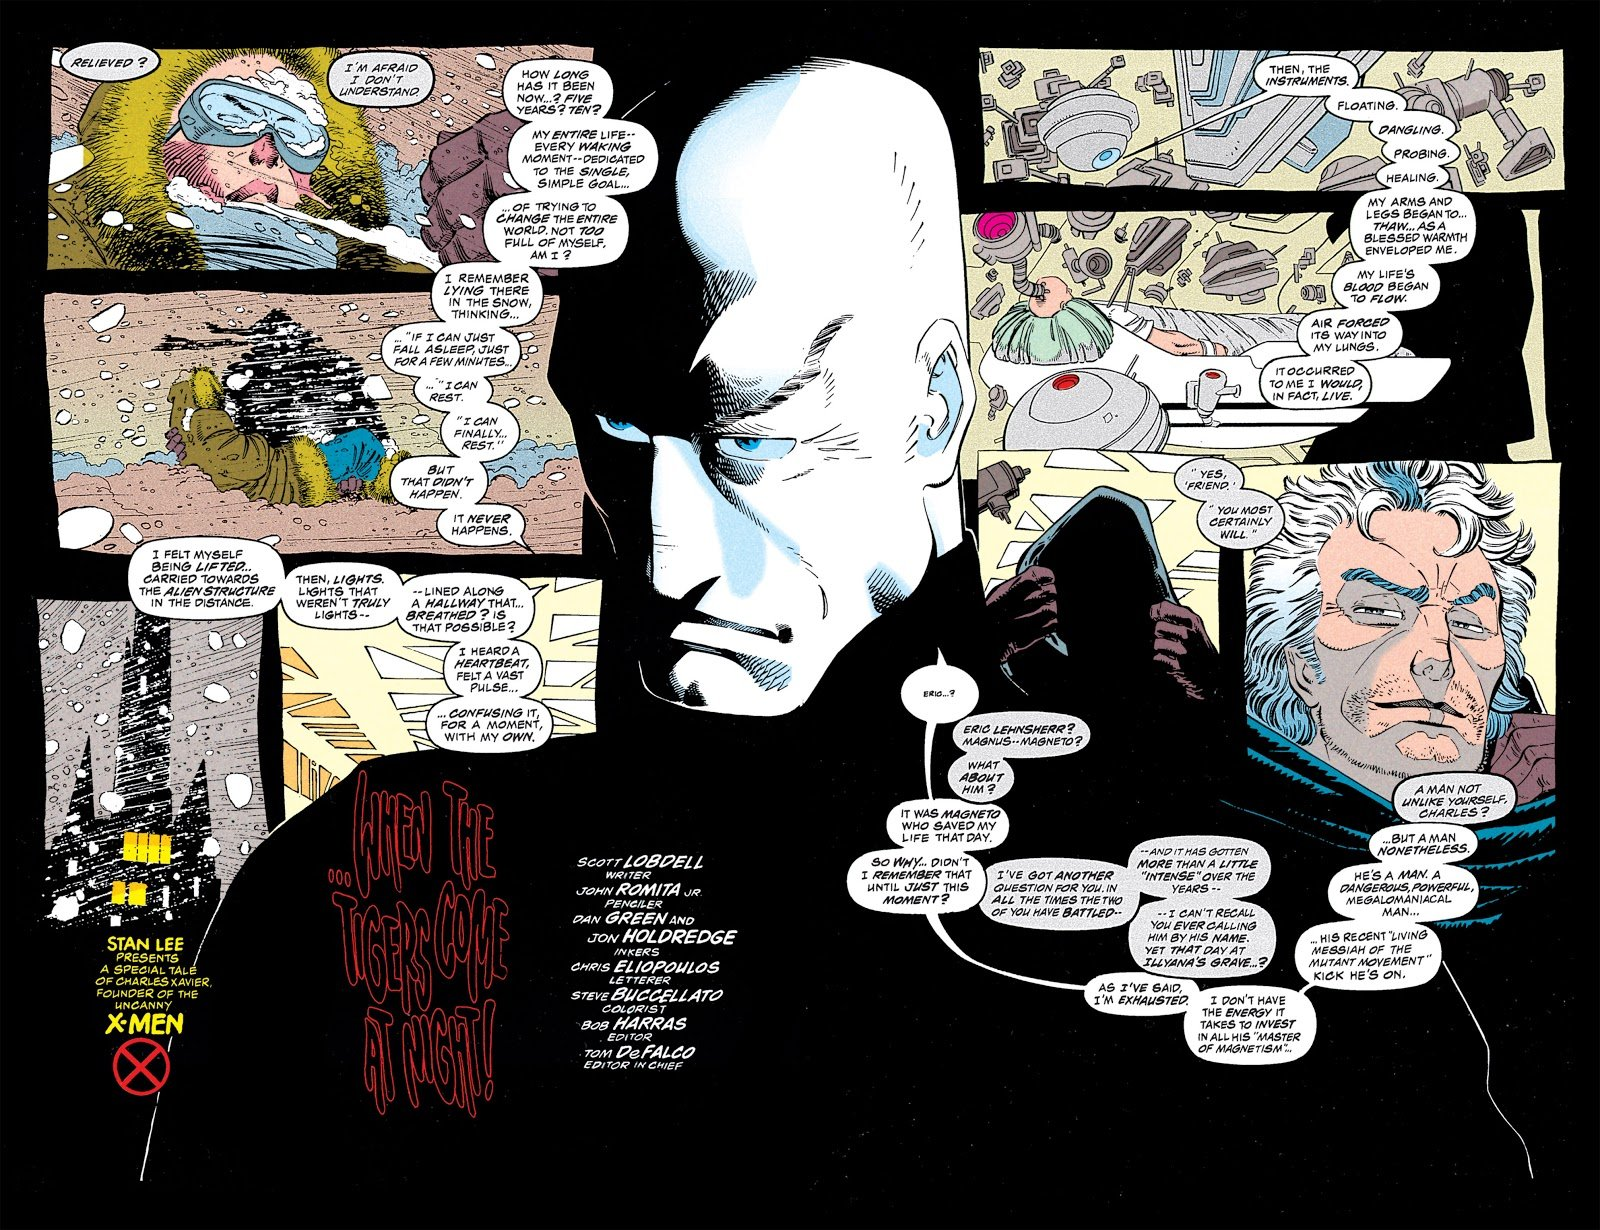 Uncanny X-Men #309 Review: The Sheer Humanity of Charles Xavier